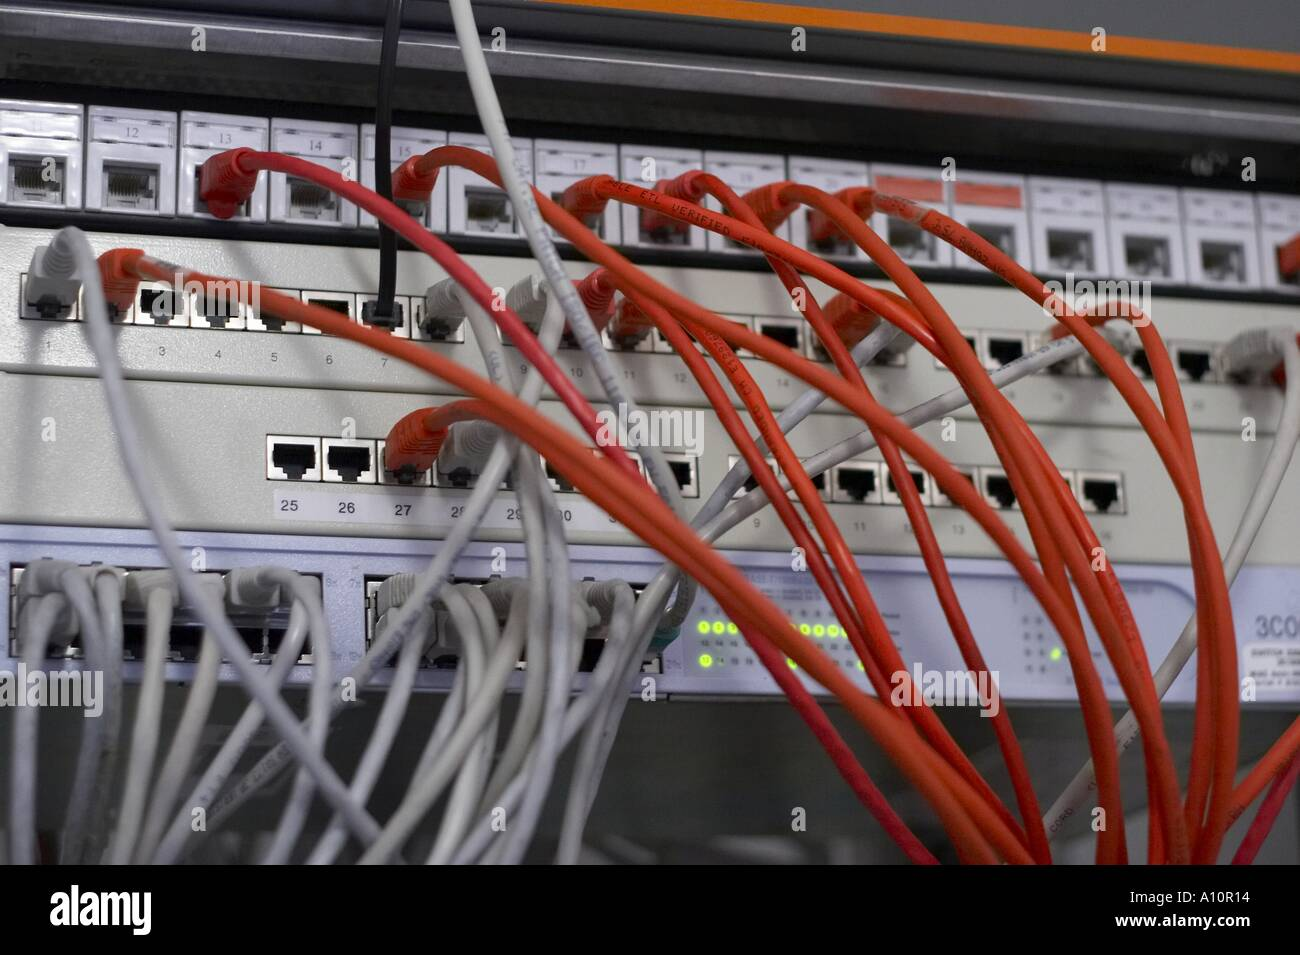 Patch Panel Stock Photos Images Page 2 Alamy Structured Wiring Cabinet Network Hub Switch Image